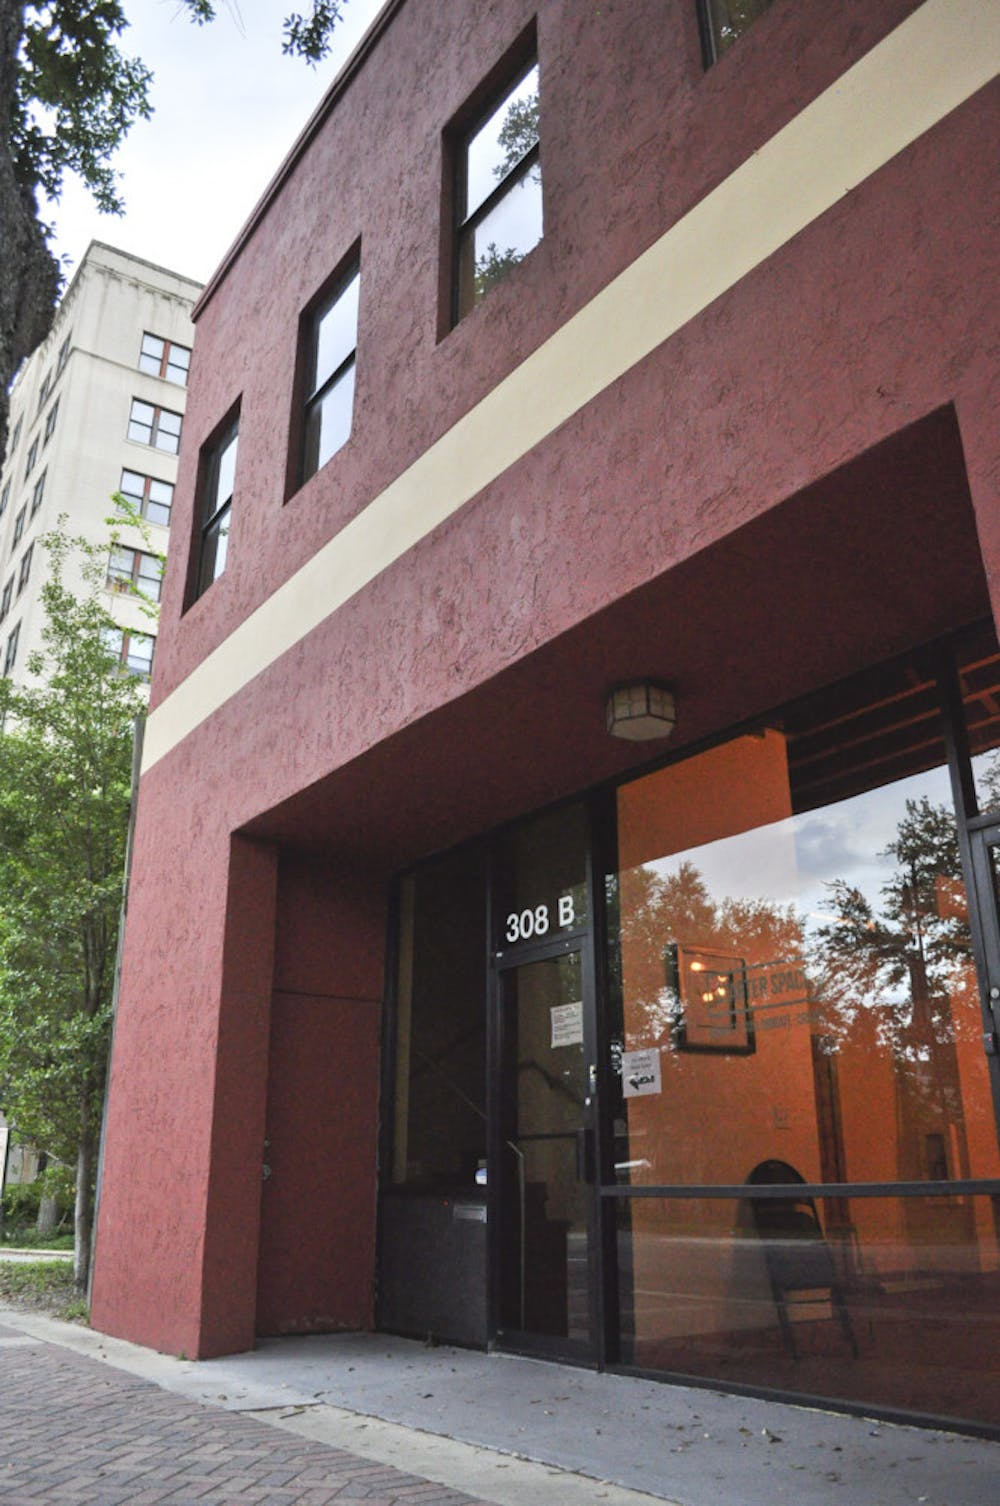 <p>Pictured is the exterior of Starter Space, a startup incubator located on 308 W. University Ave.</p>